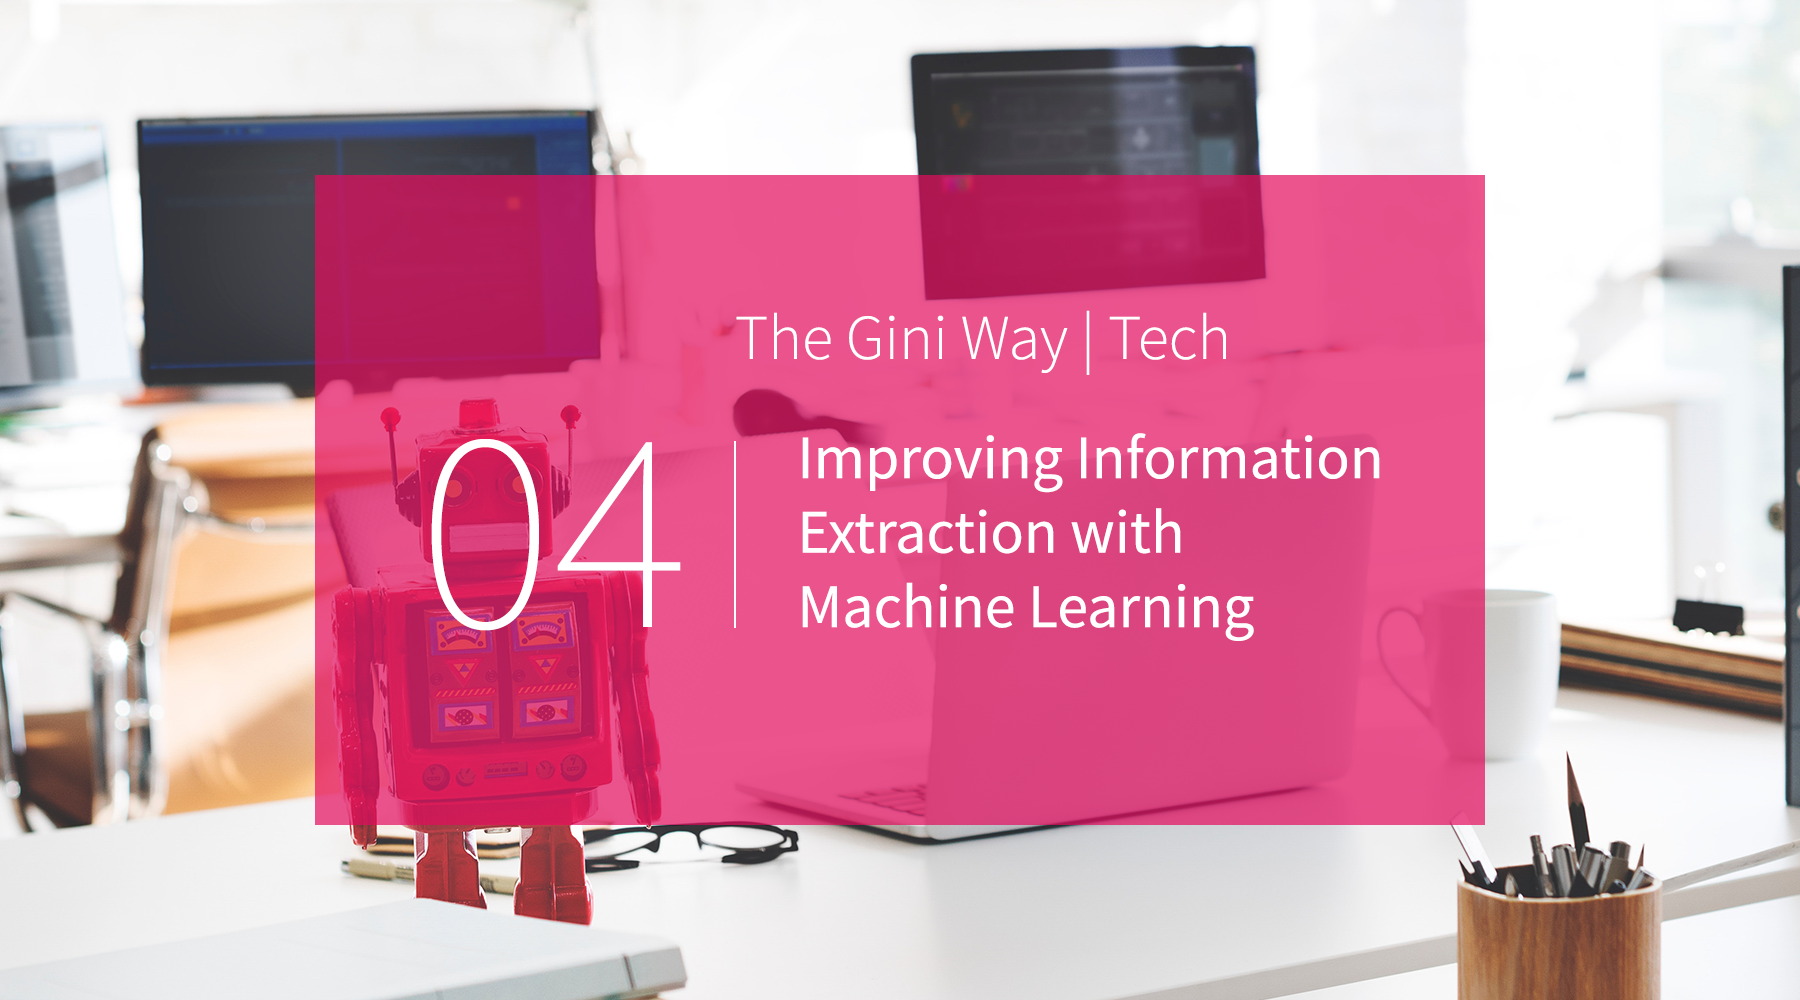 Improving Information Extraction with Machine Learning